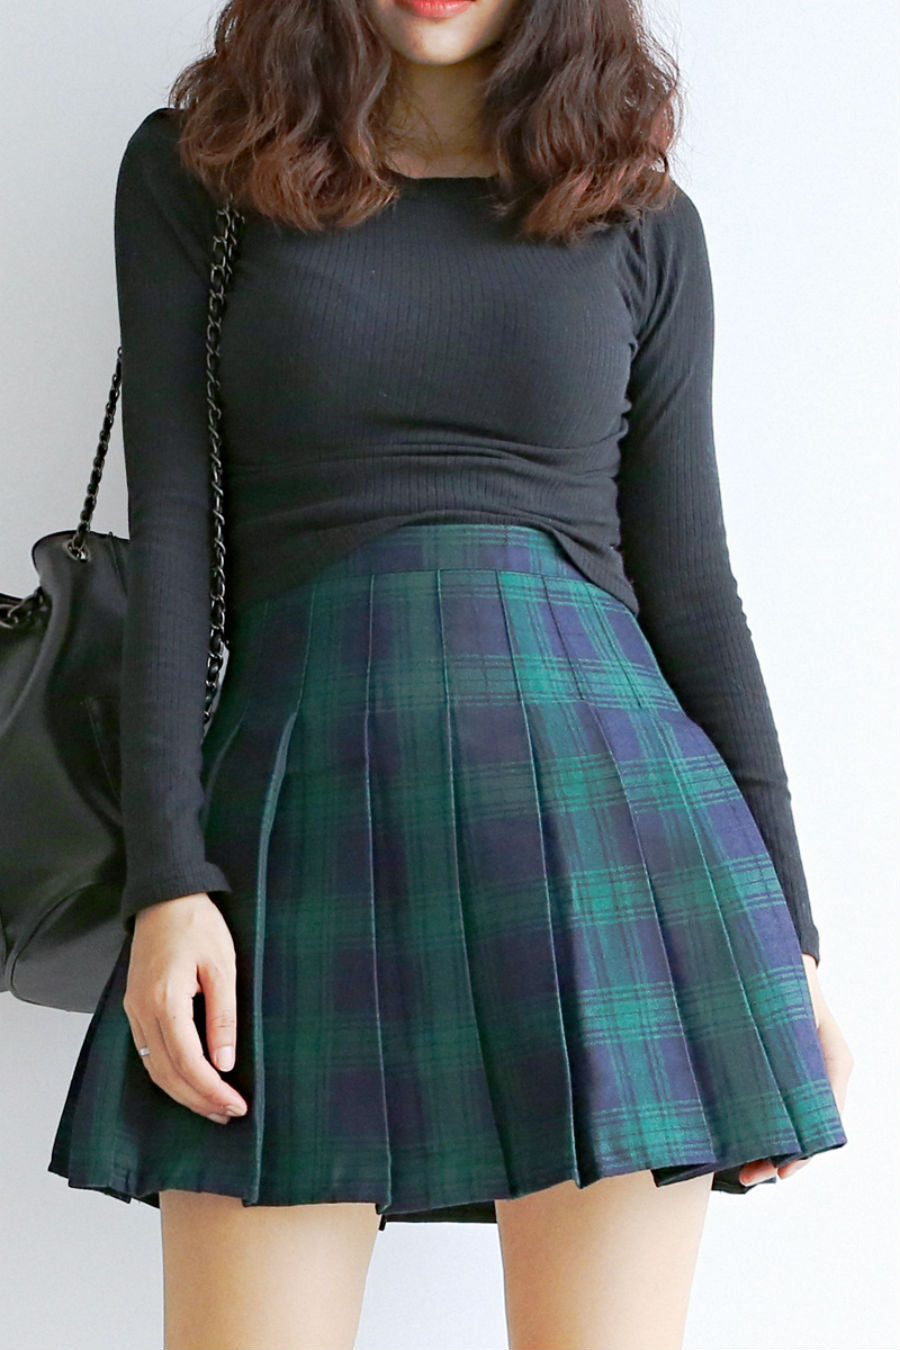 09c6aabe0 Green Plaid Pleated Skirt. Tap to expand